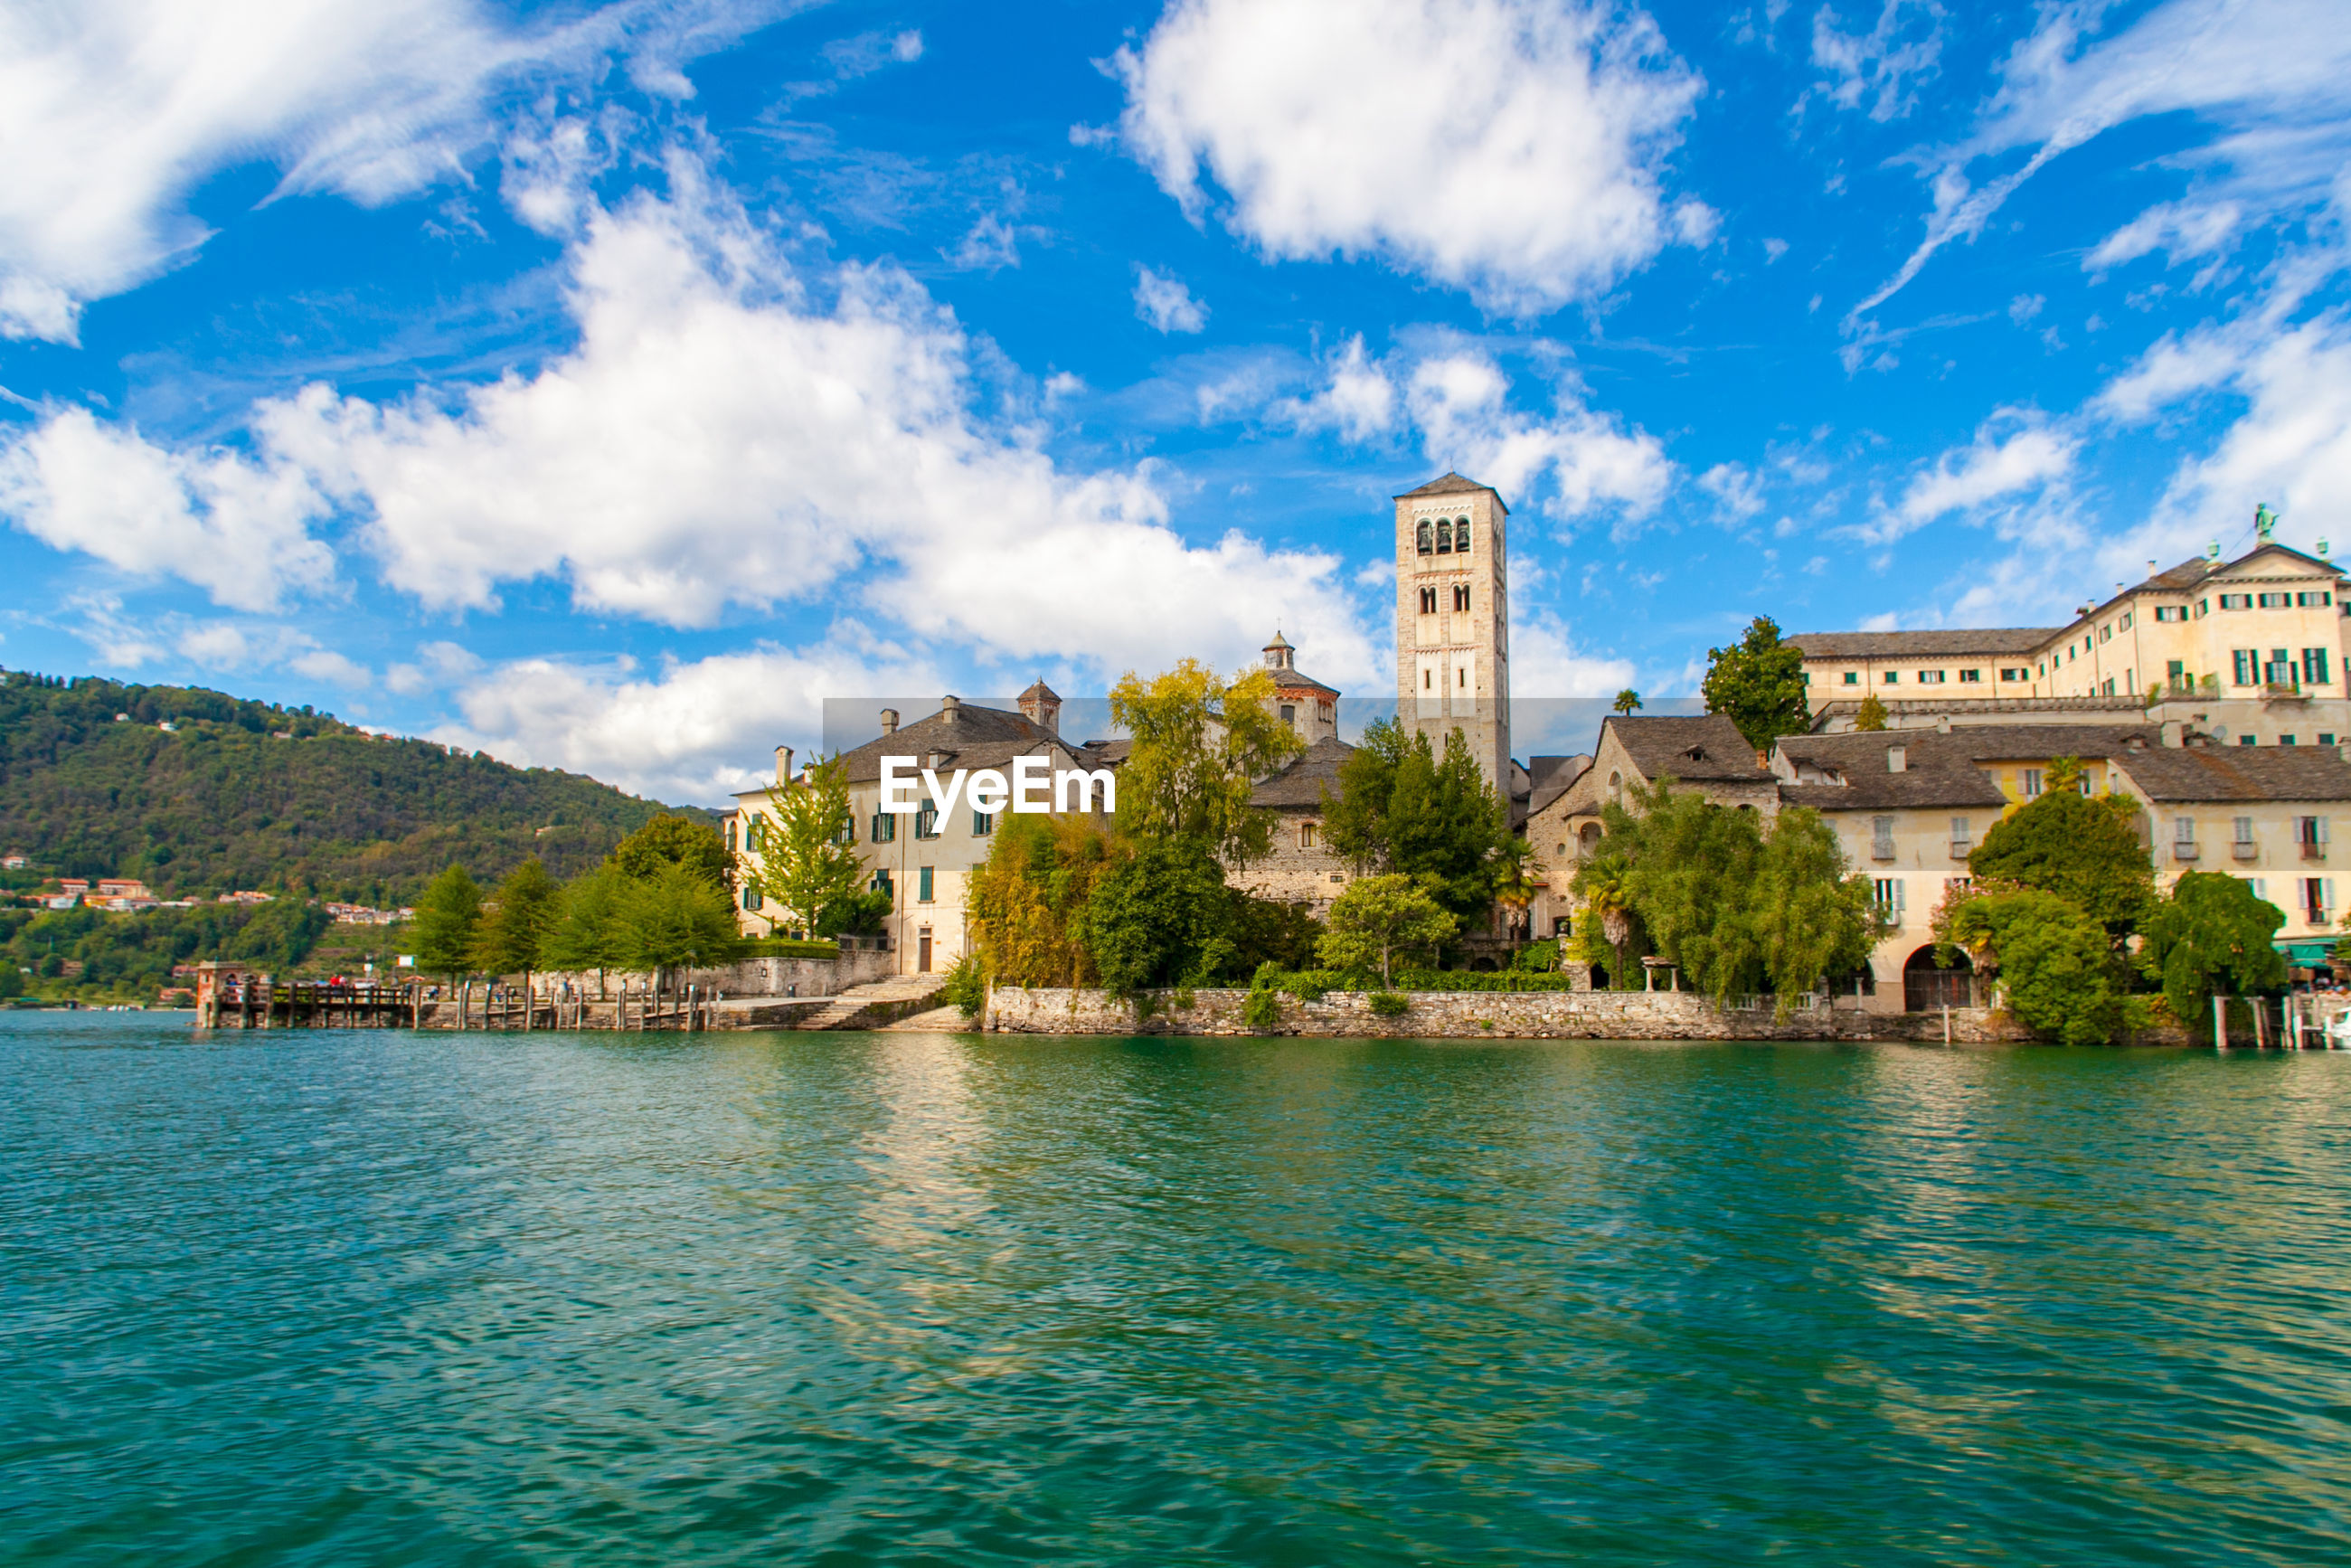 Isola san giulio inside orta's lake, piemonte, italy, from water surface with blue sky.